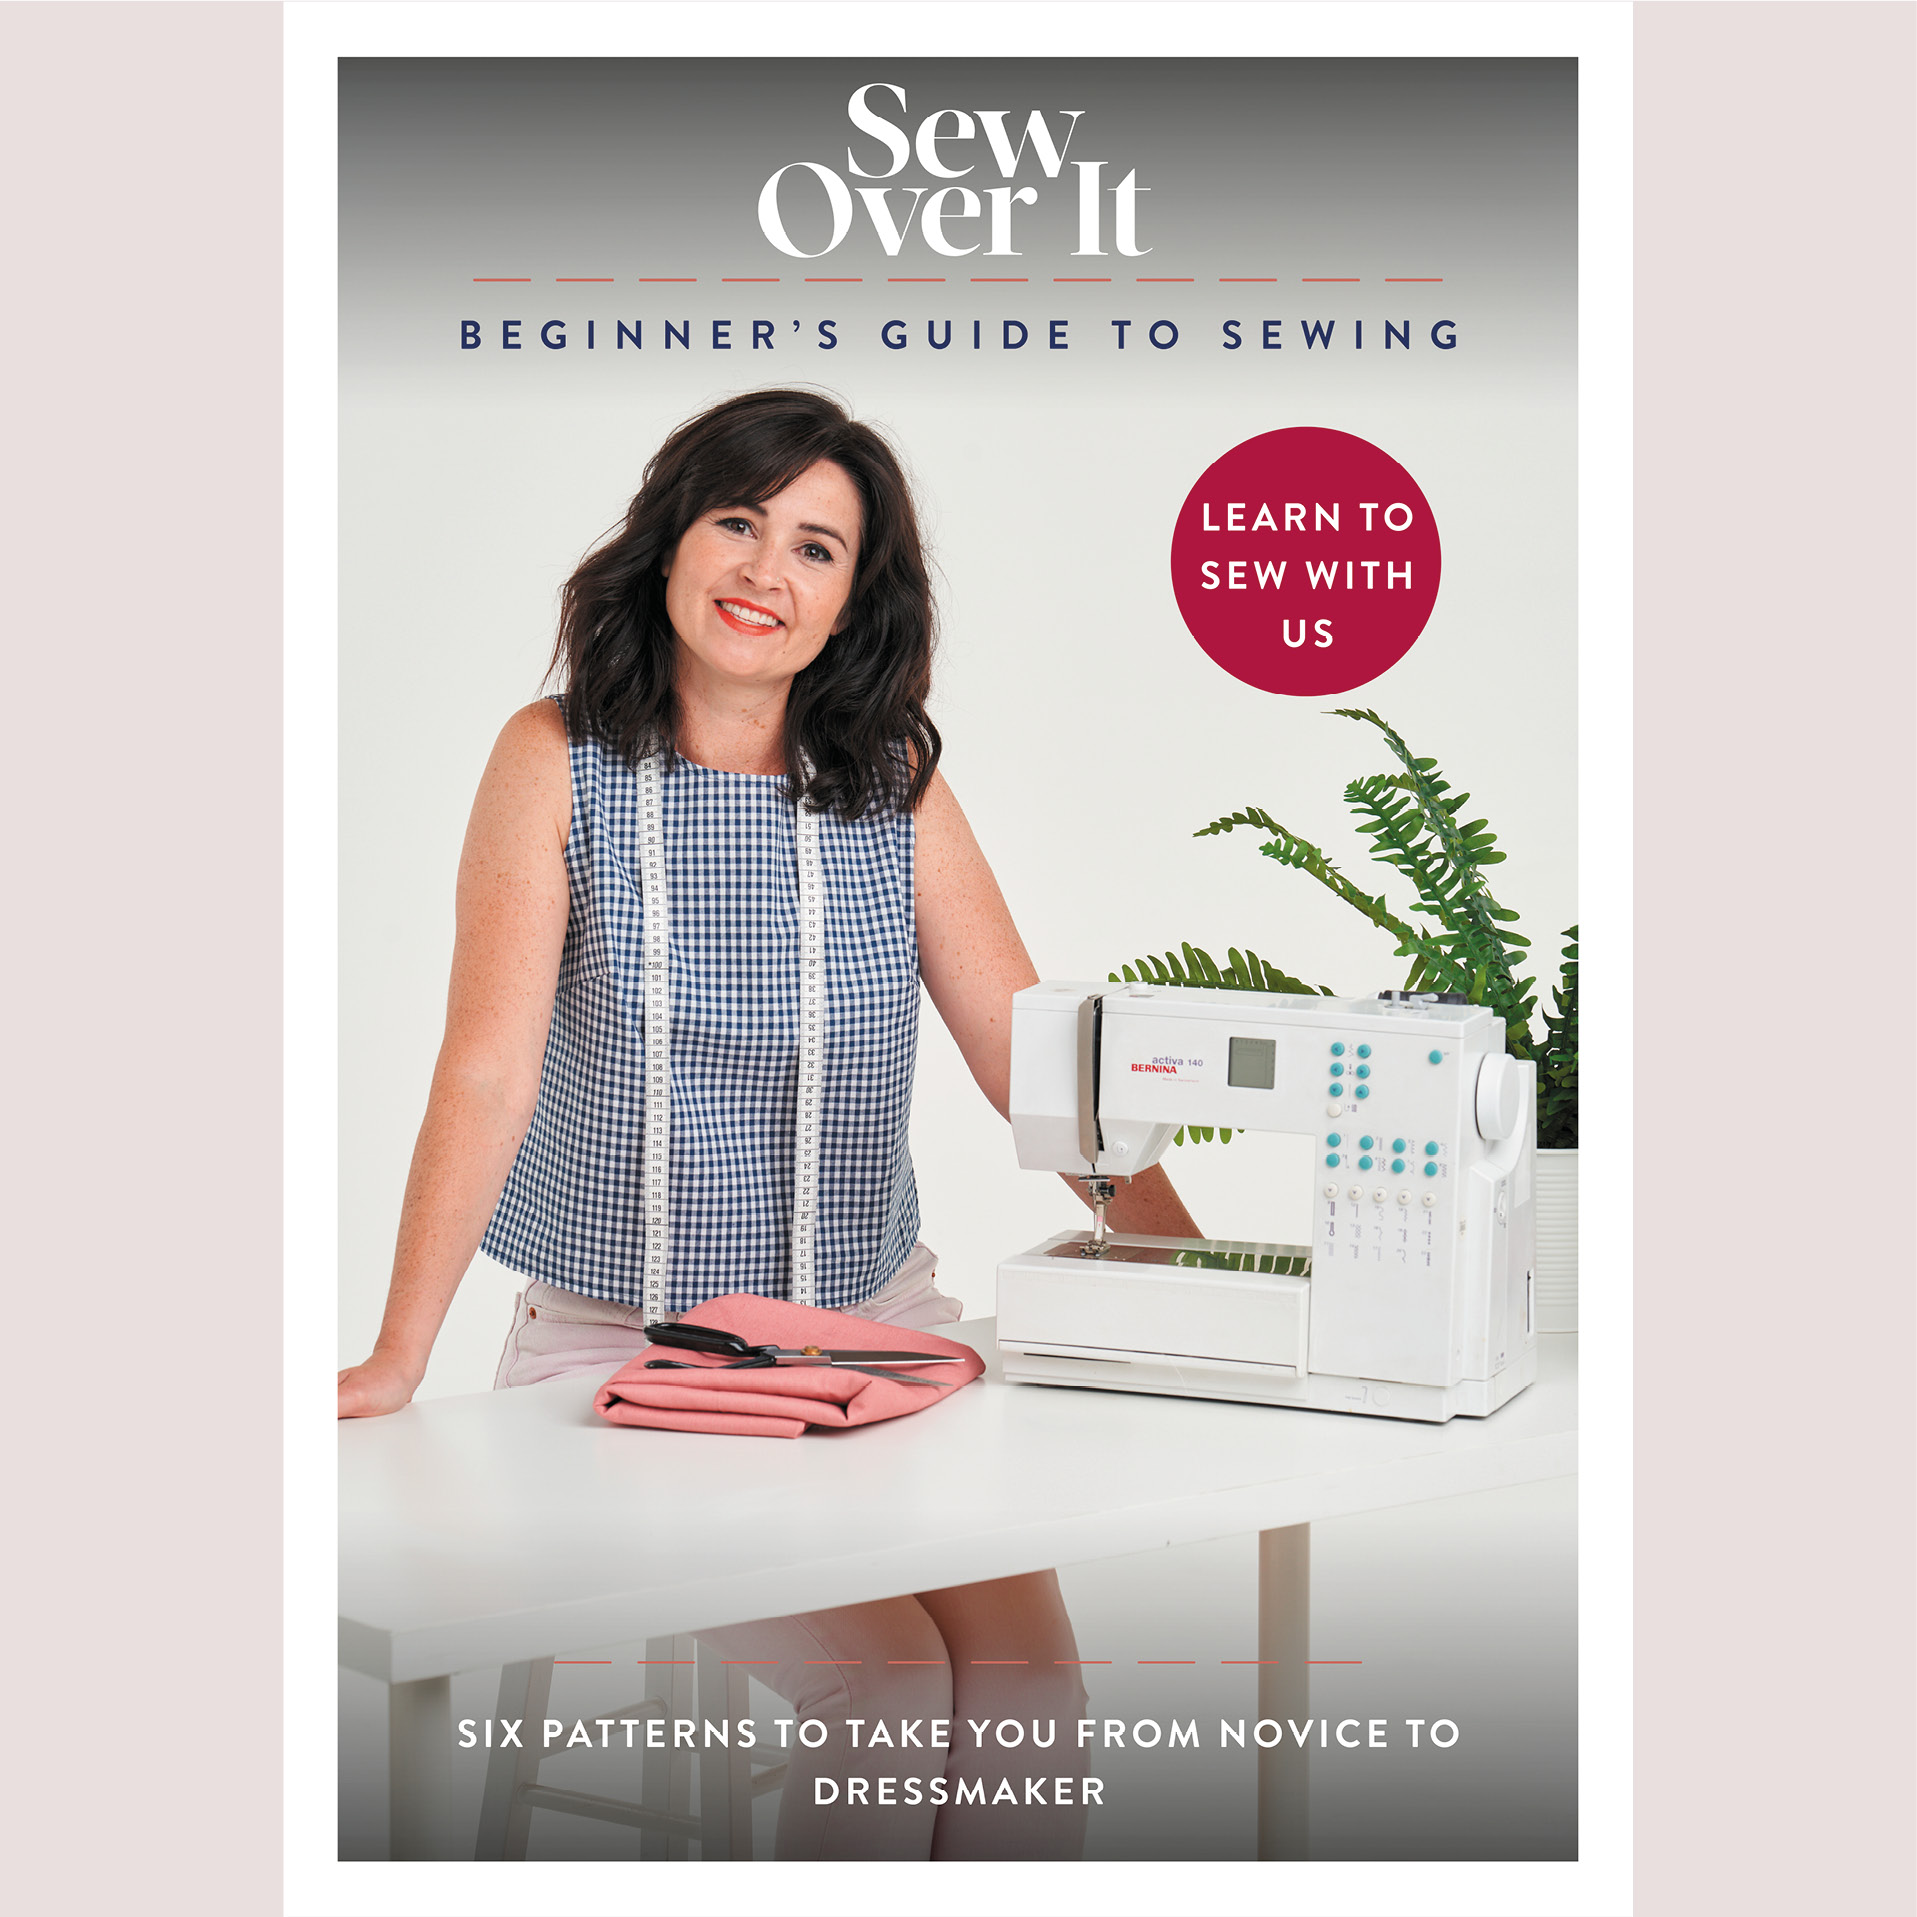 Sew Over It - Beginners Guide to Sewing